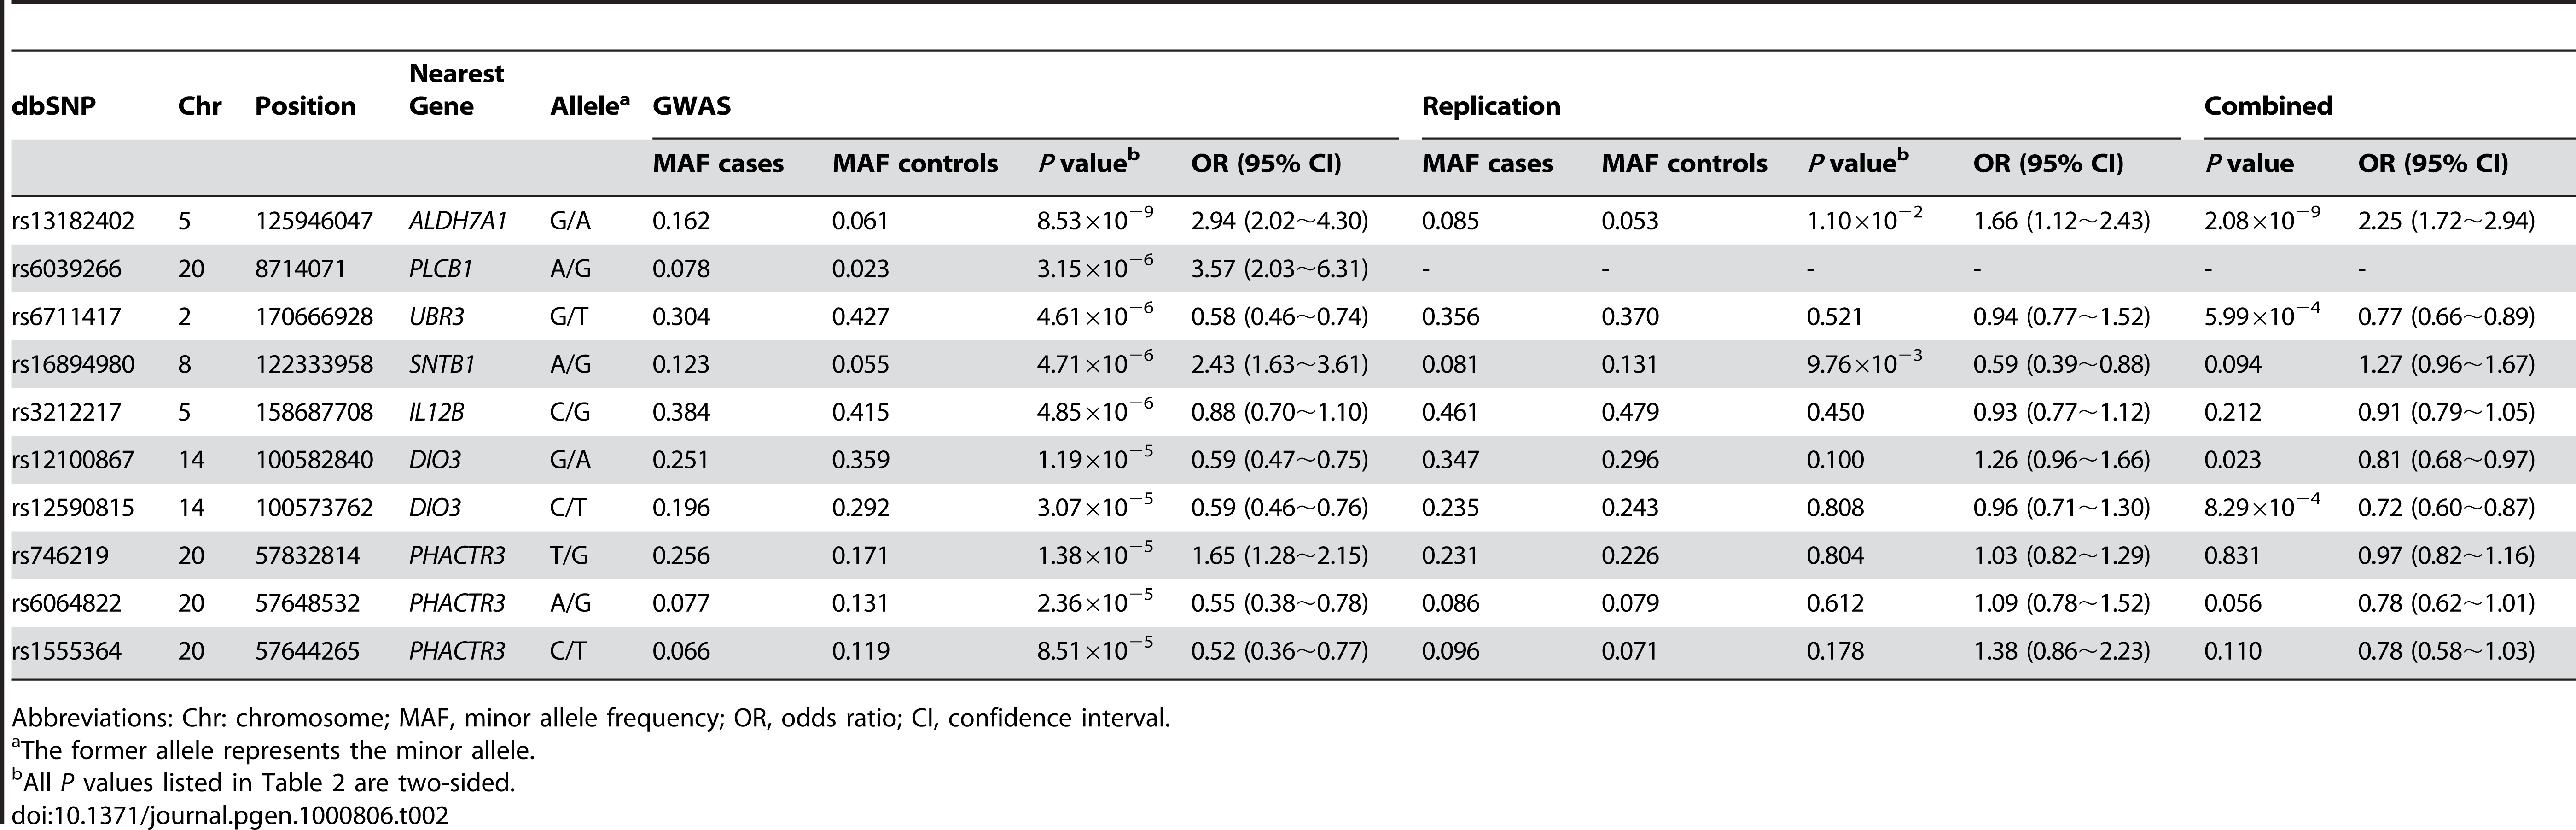 Summary of the GWAS and replication studies.